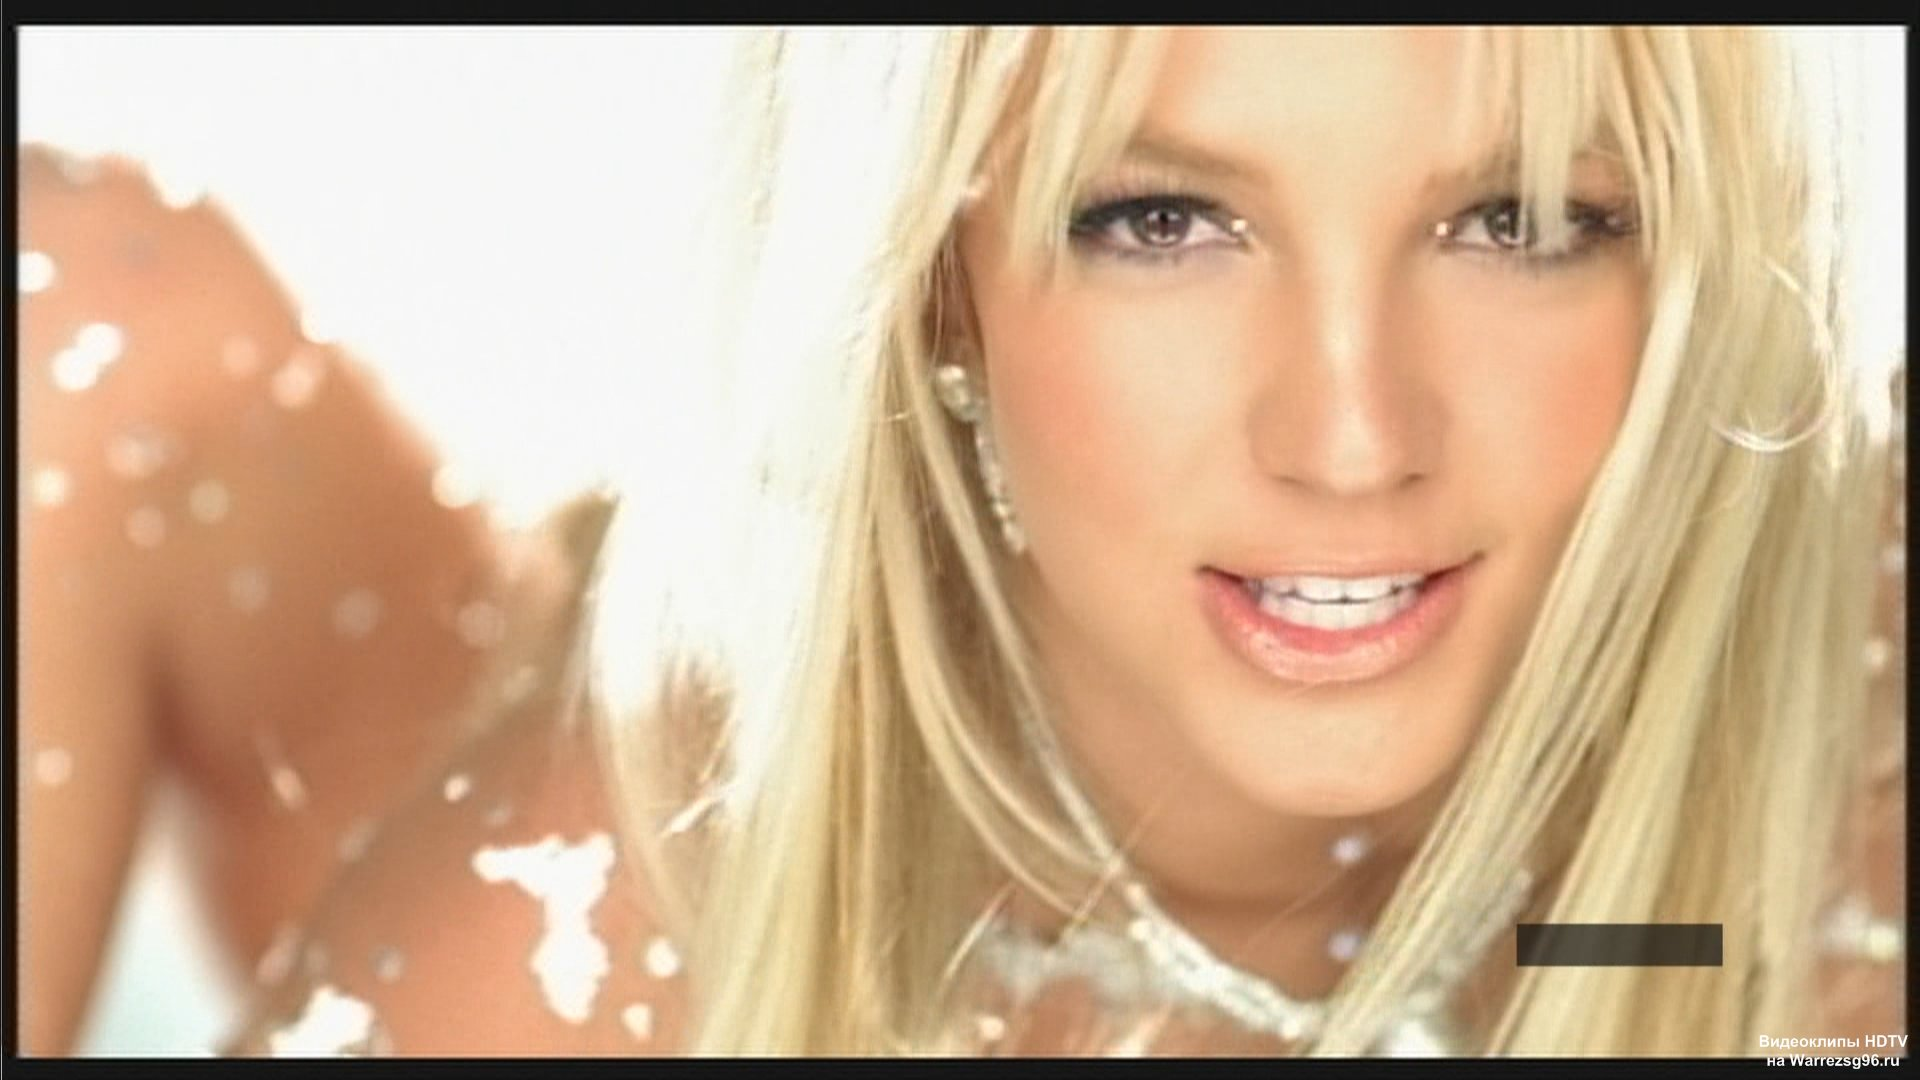 Britney Spears Toxic - Viewing Gallery Britney Spears Toxic